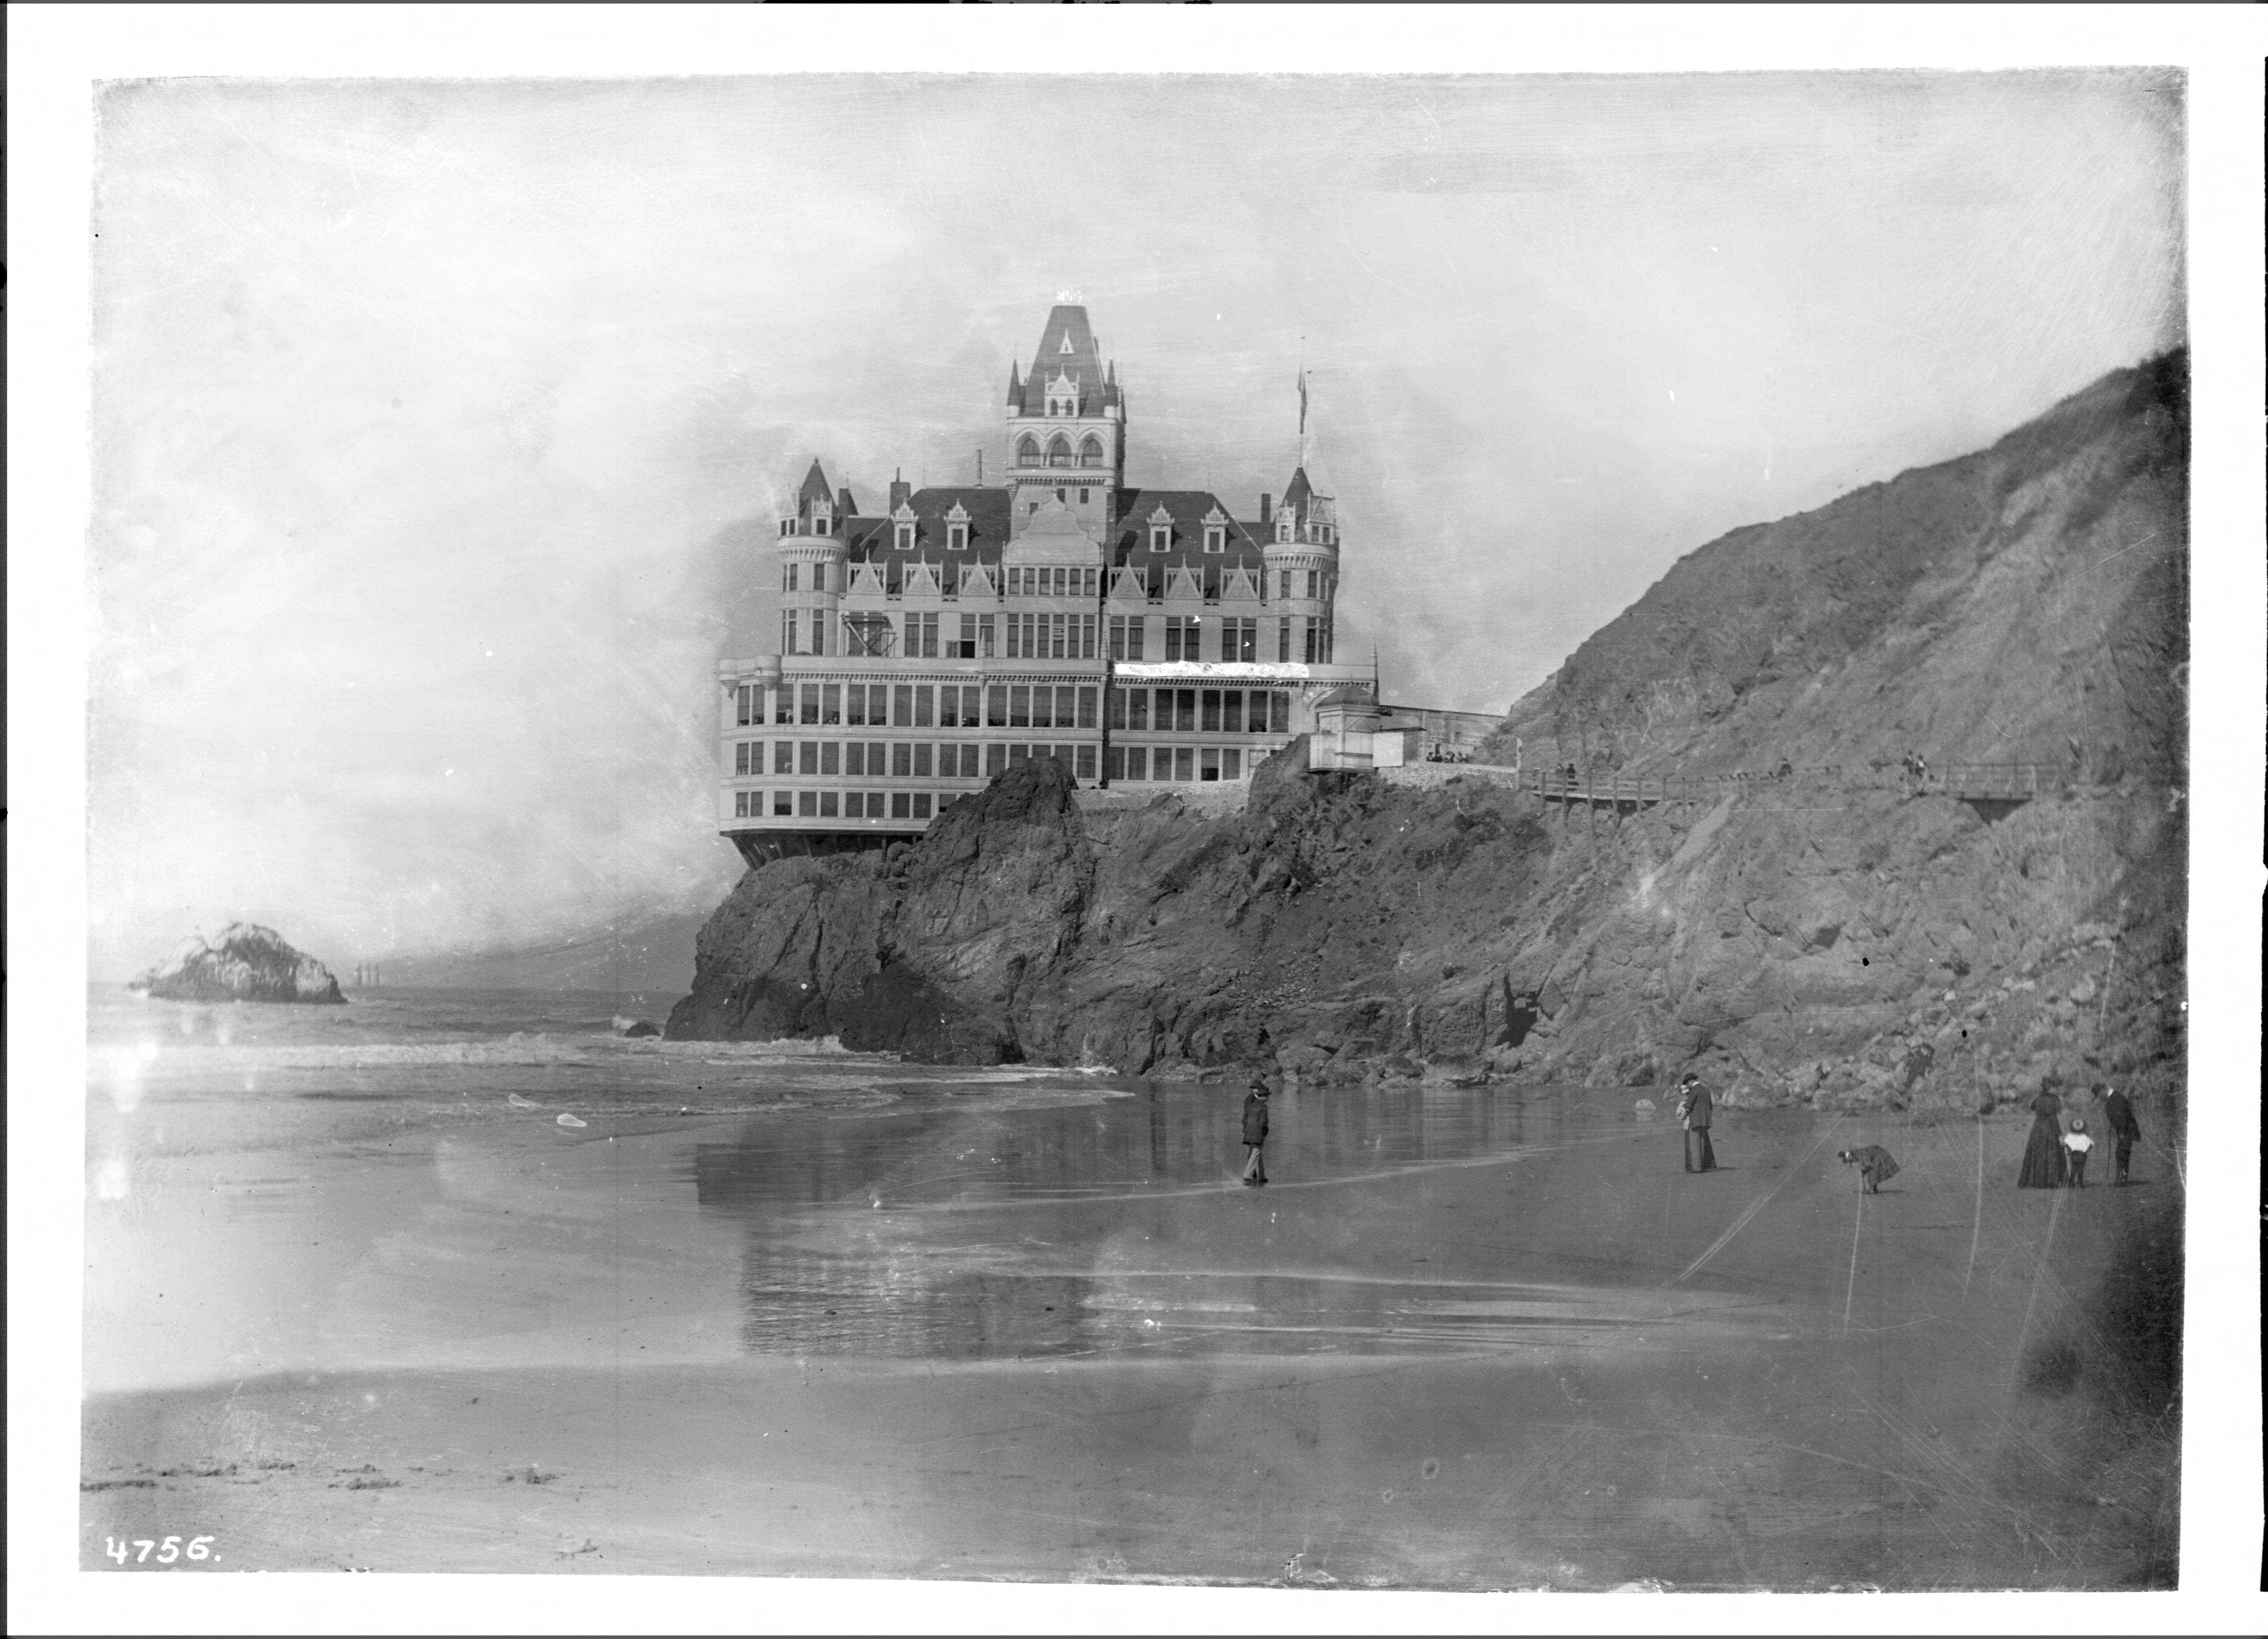 File:San Francisco's Cliff House Restaurant And Seal Rocks